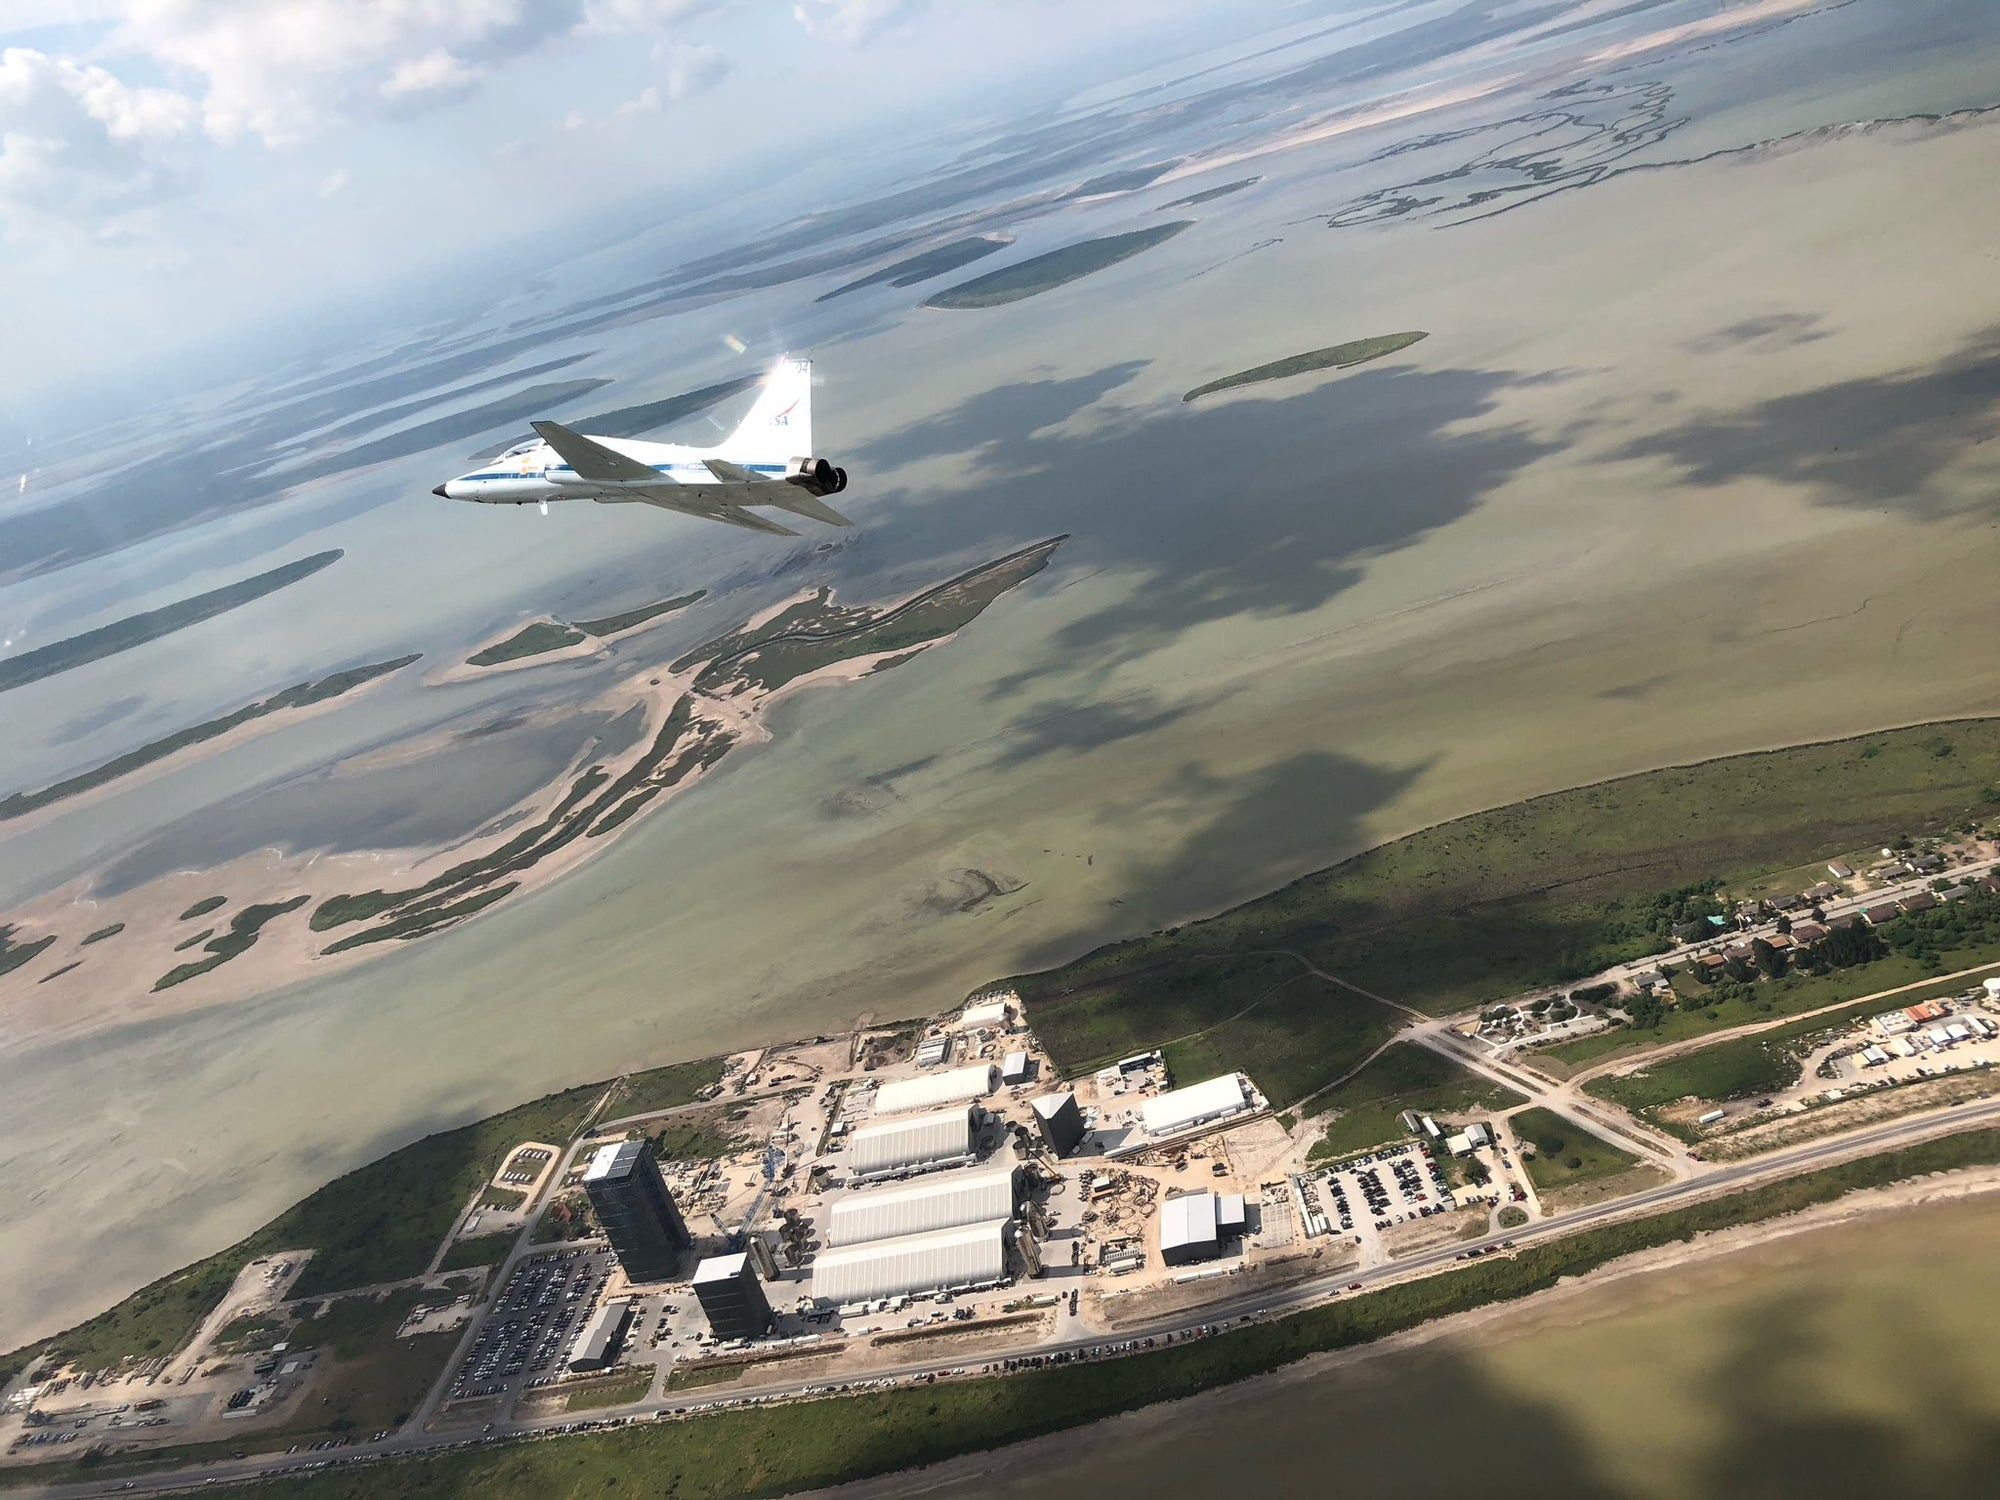 NASA Astronauts fly over SpaceX's Starship facility in South Texas